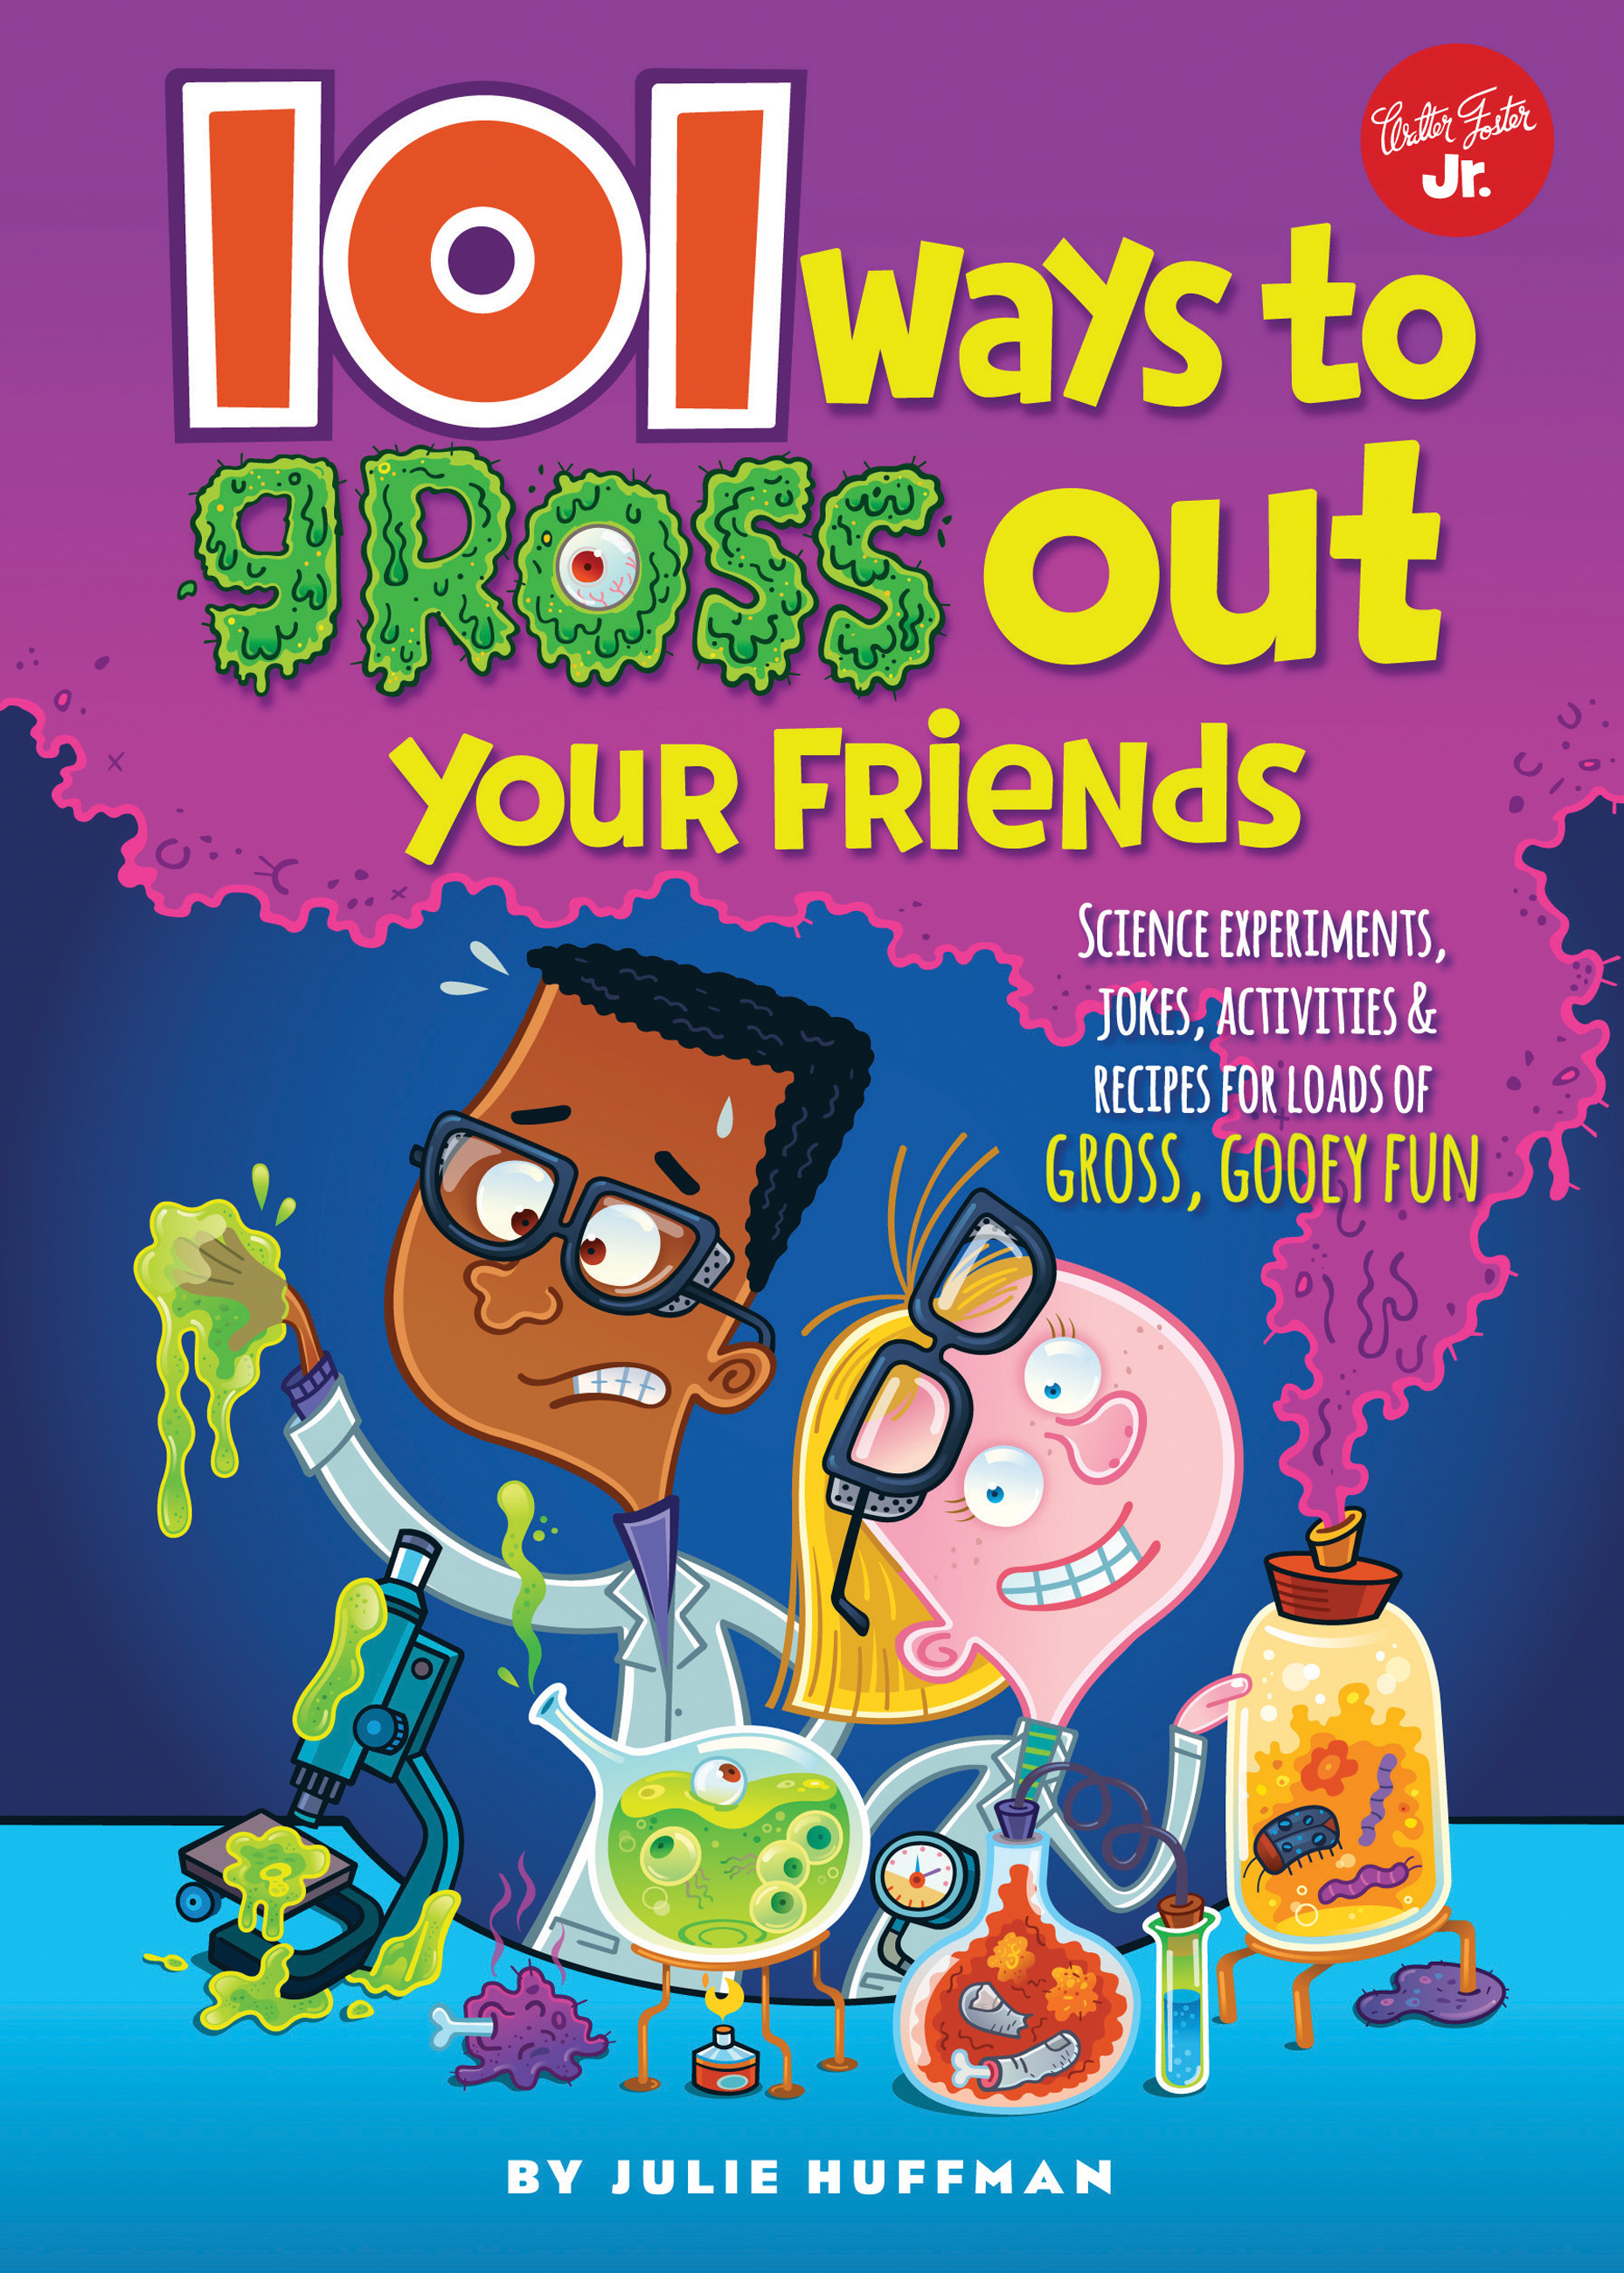 101 Ways to Gross Out Your Friends Science experiments, jokes, activities & recipes for loads of gross, gooey fun